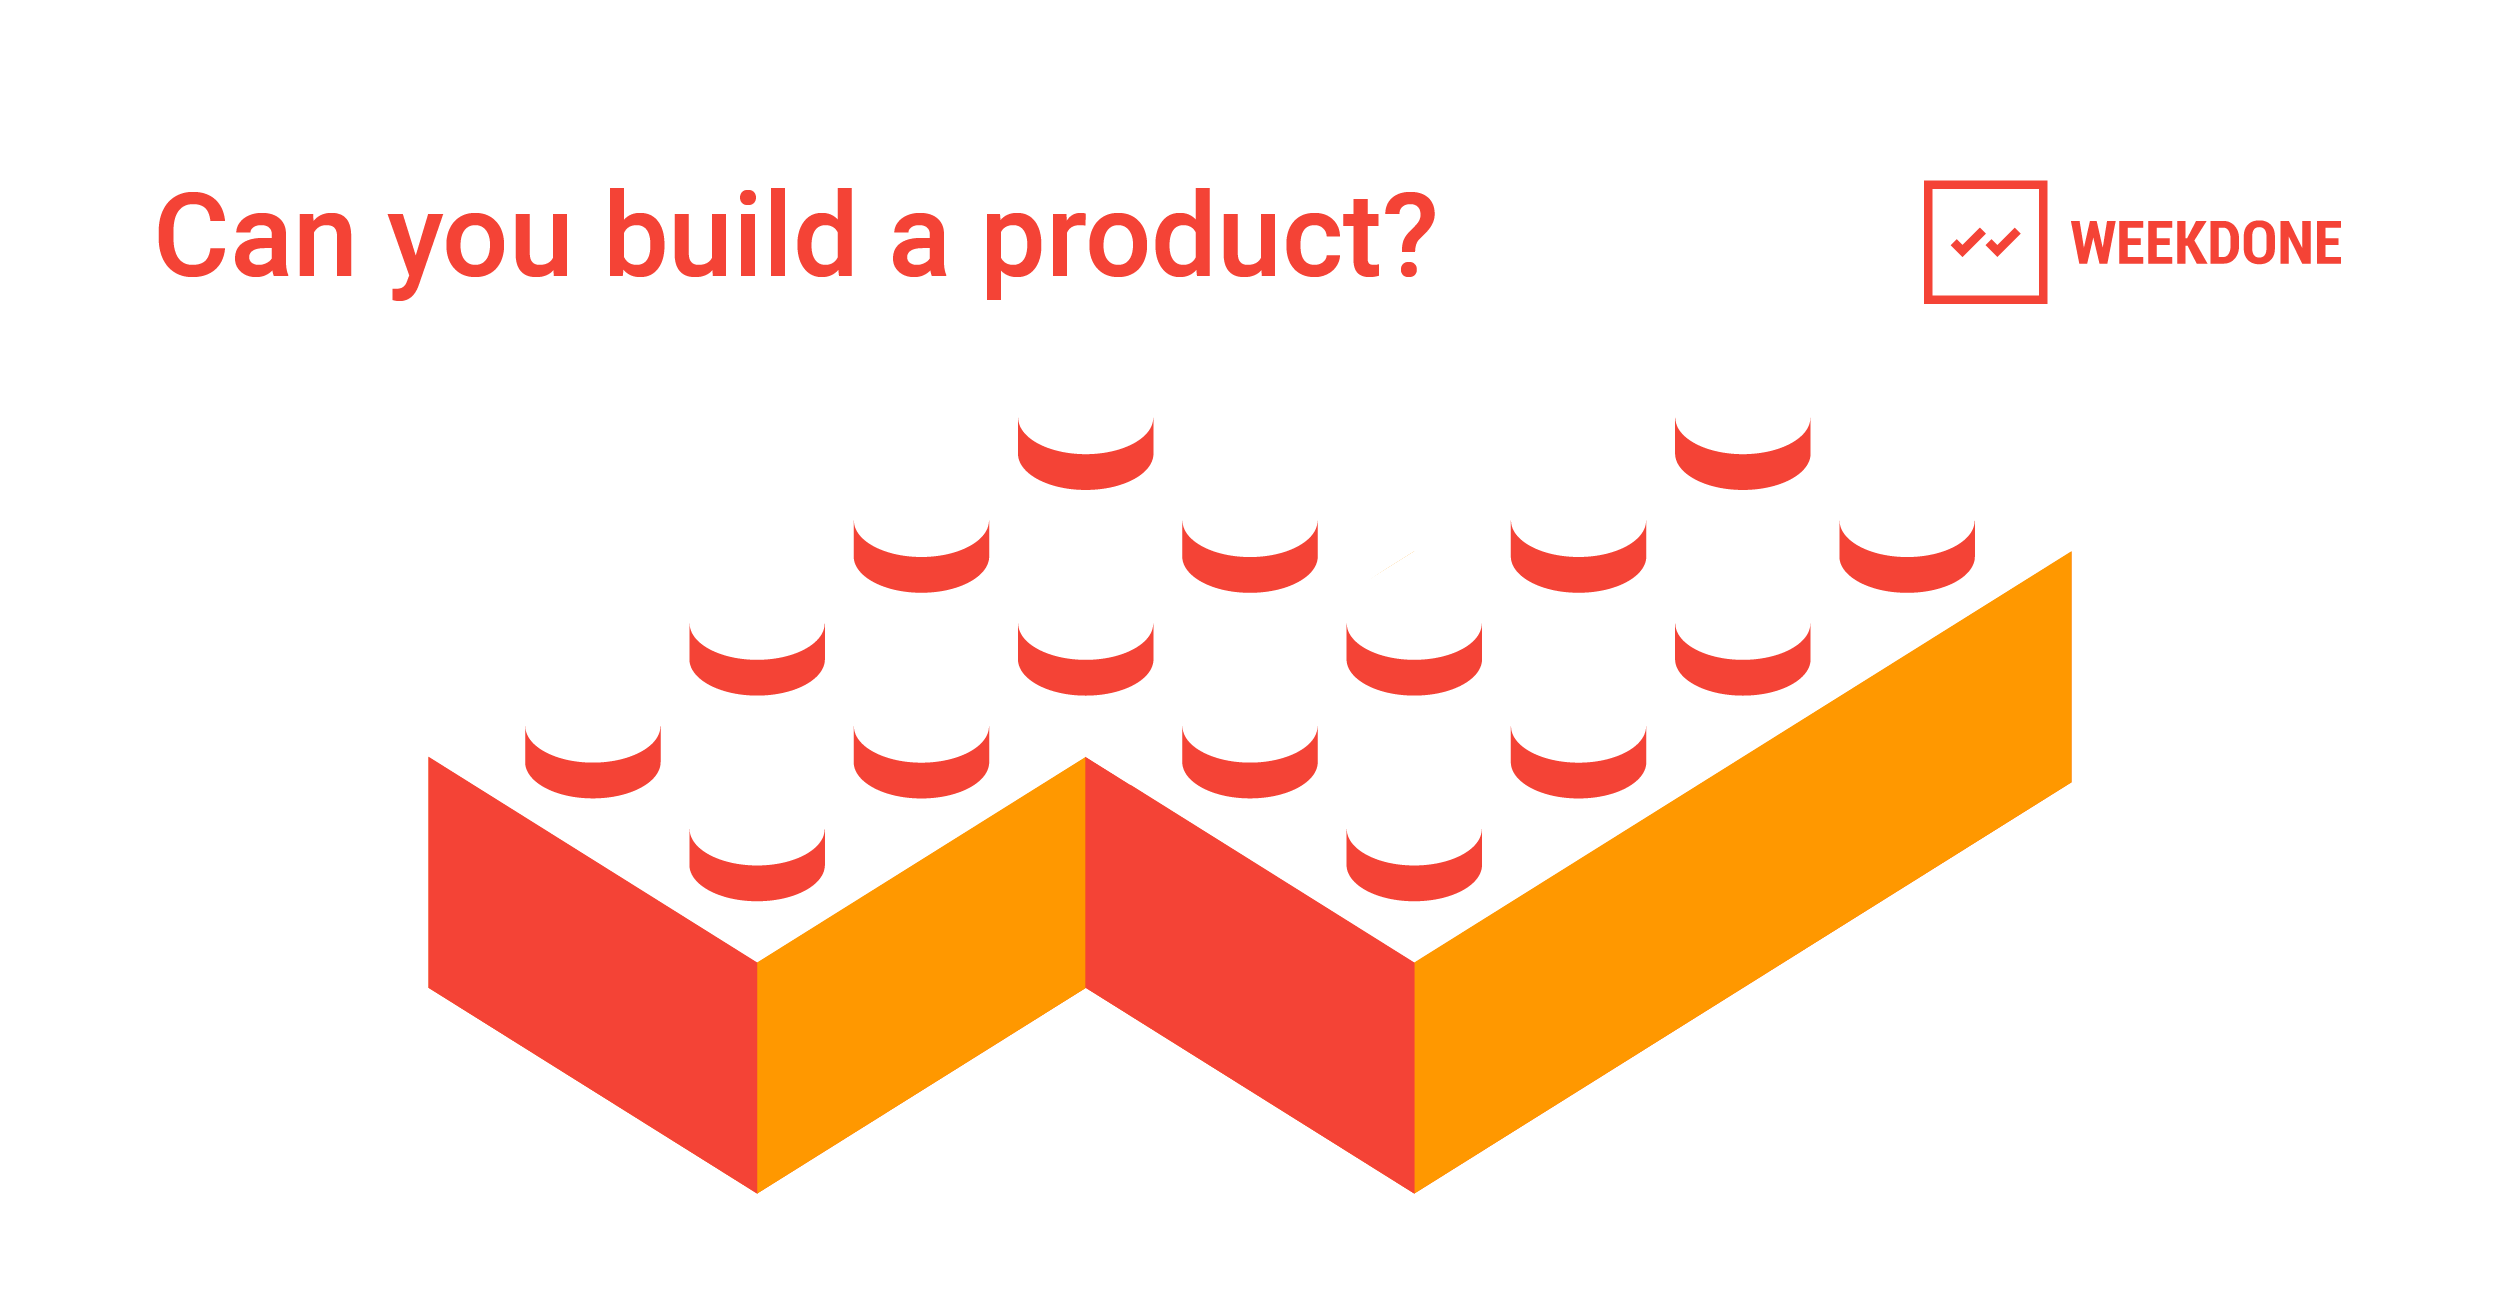 can you build a product?